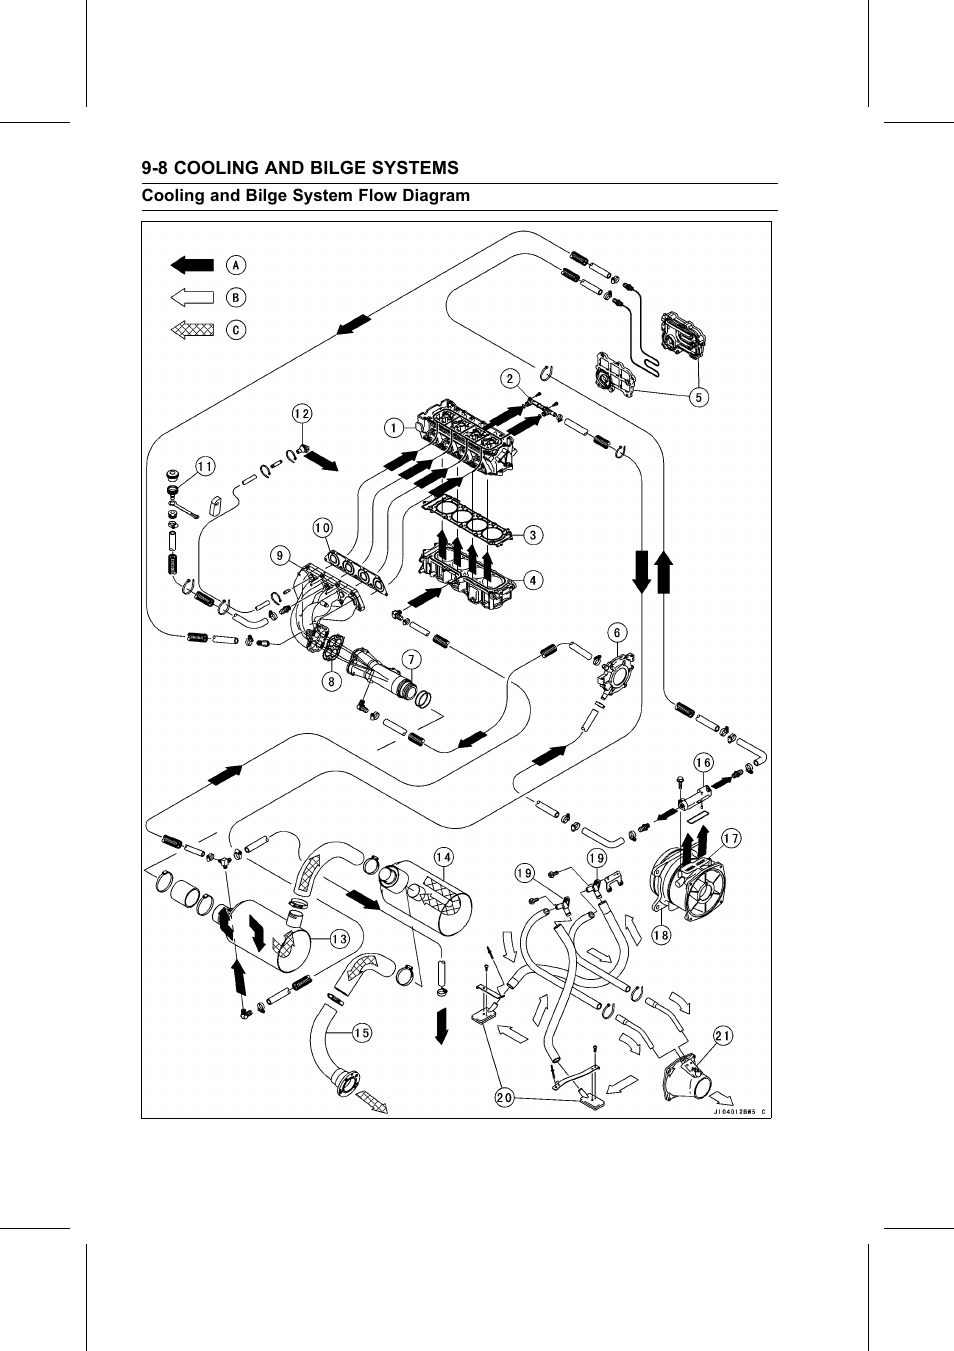 Cooling And Bilge System Flow Diagram Kawasaki Stx 15f User Manual